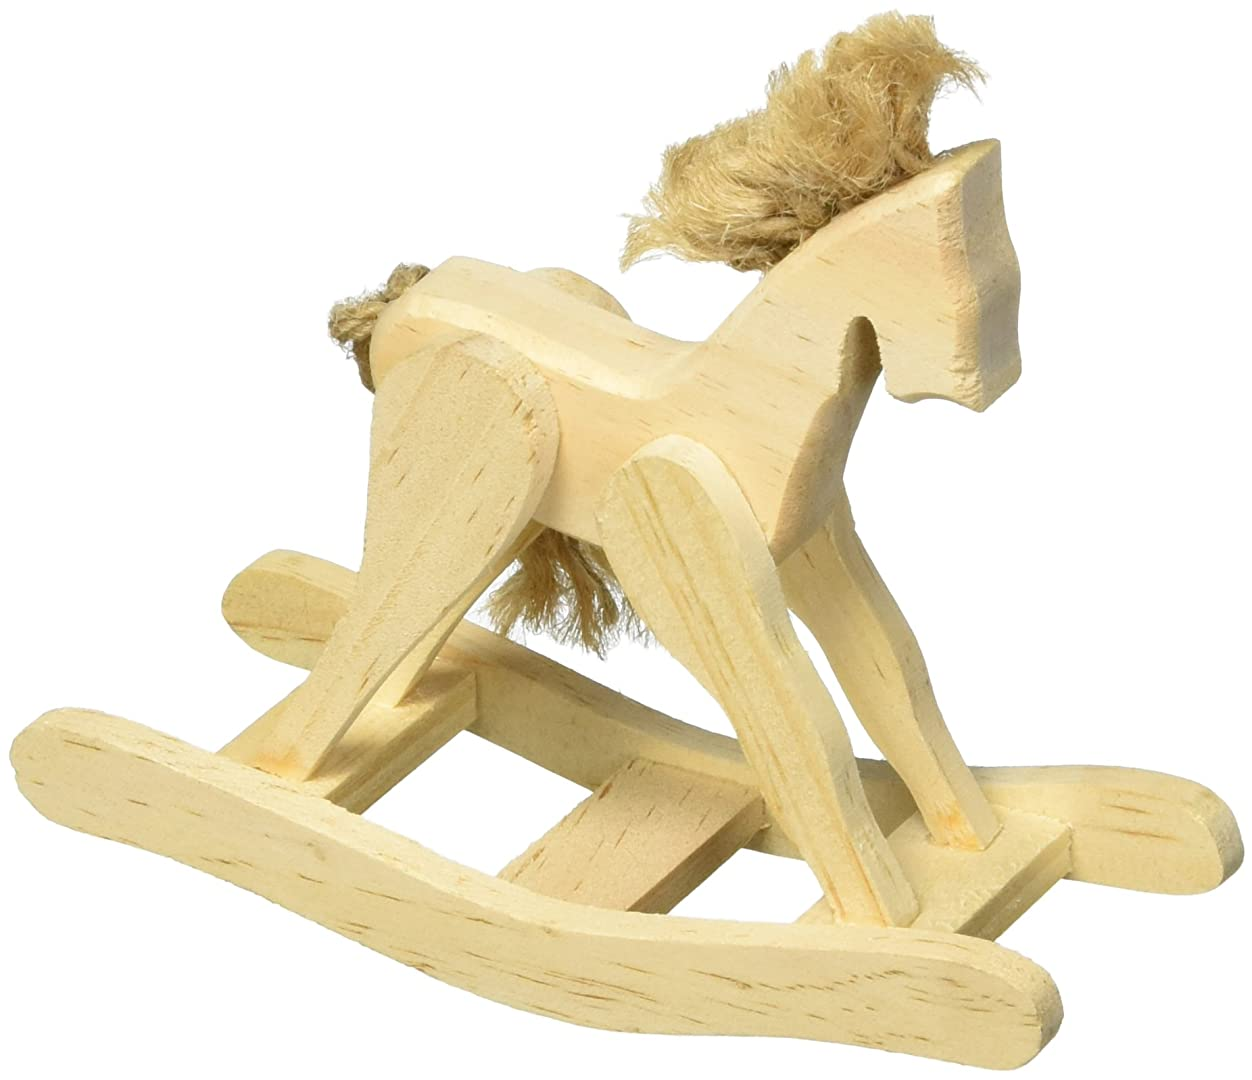 Darice 9129-35 Unfinished Rocking Horse with Jute Accents, 4.5/8-Inch ikyf797691298